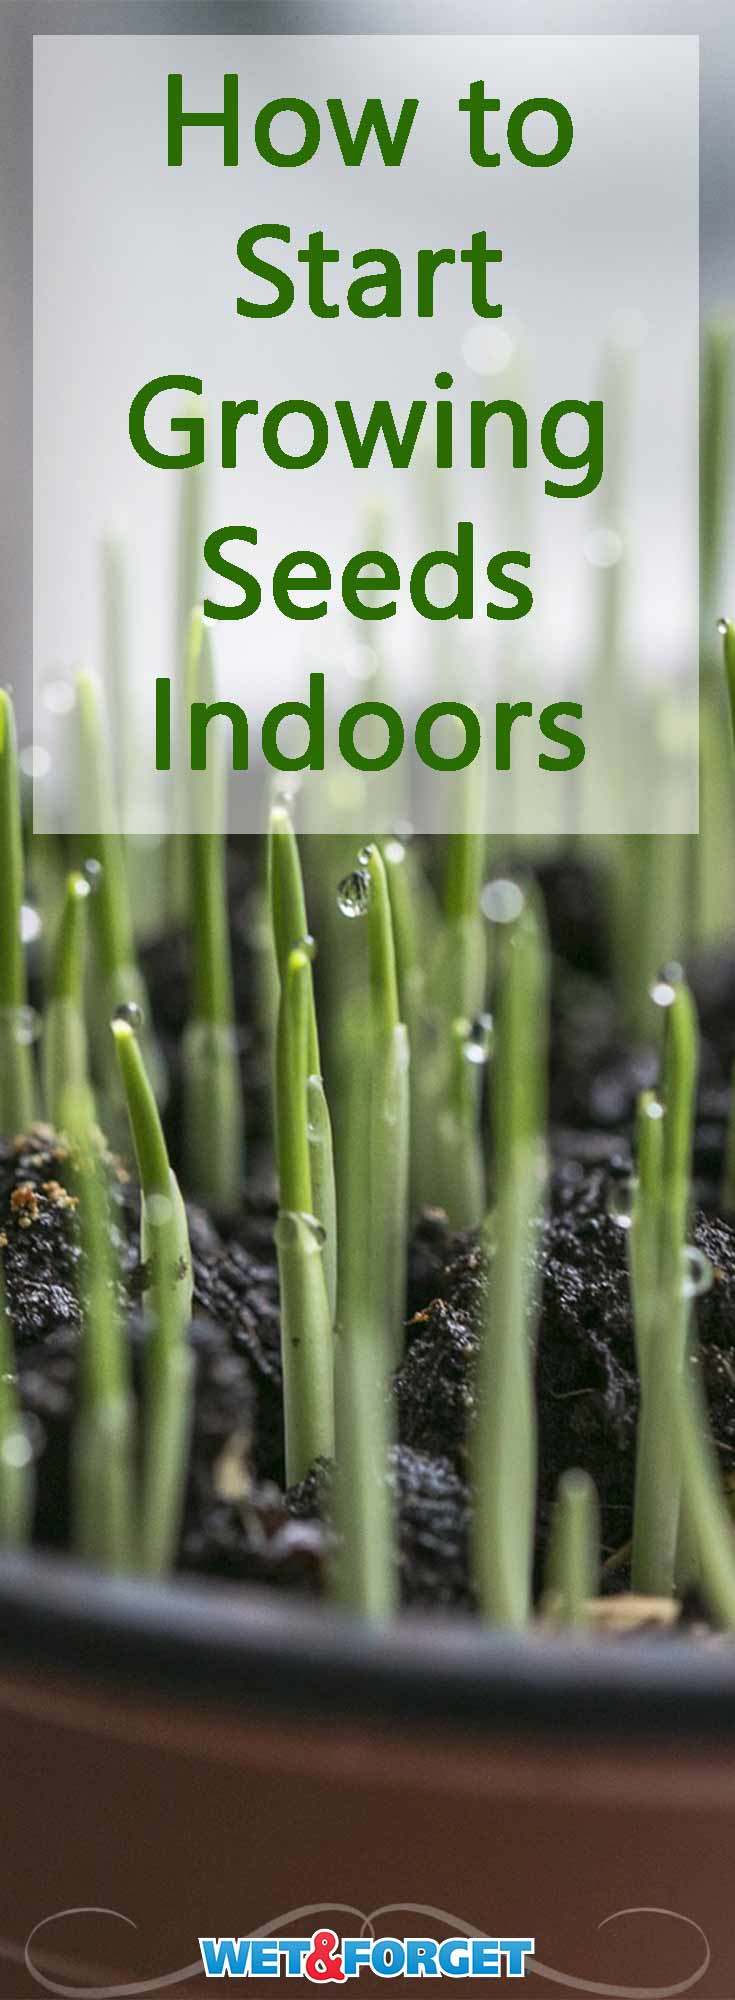 Get a head start on the growing season by planting seeds indoors! Use our guide to find out which seeds to start growing inside and when to start planting.